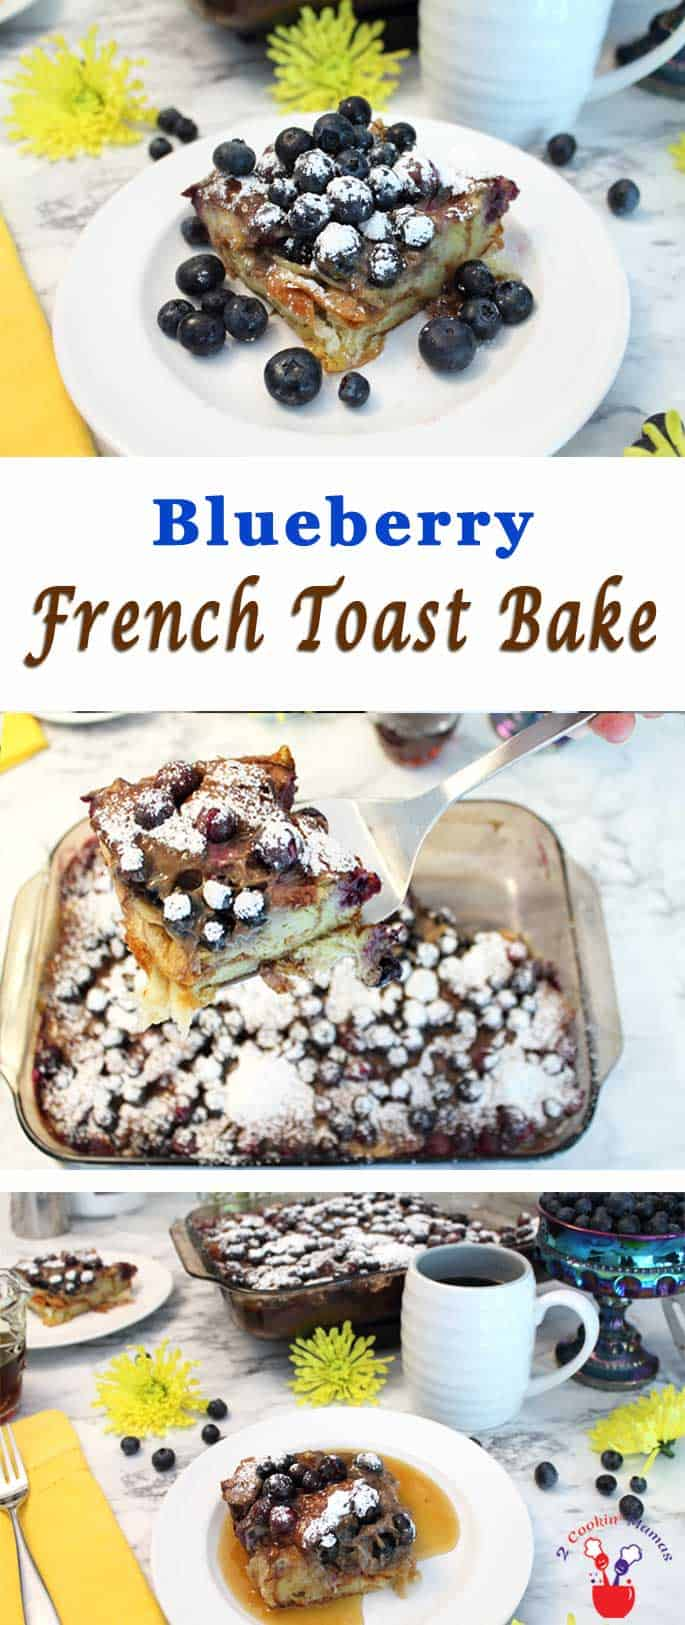 Our Blueberry French Toast Bake makes breakfast as easy as 1-2-3. Layer croissants, blueberries, yogurt & eggs in dish, chill & bake. A sweet morning treat! #breakfast #frenchtoast #blueberries #recipe #casserole